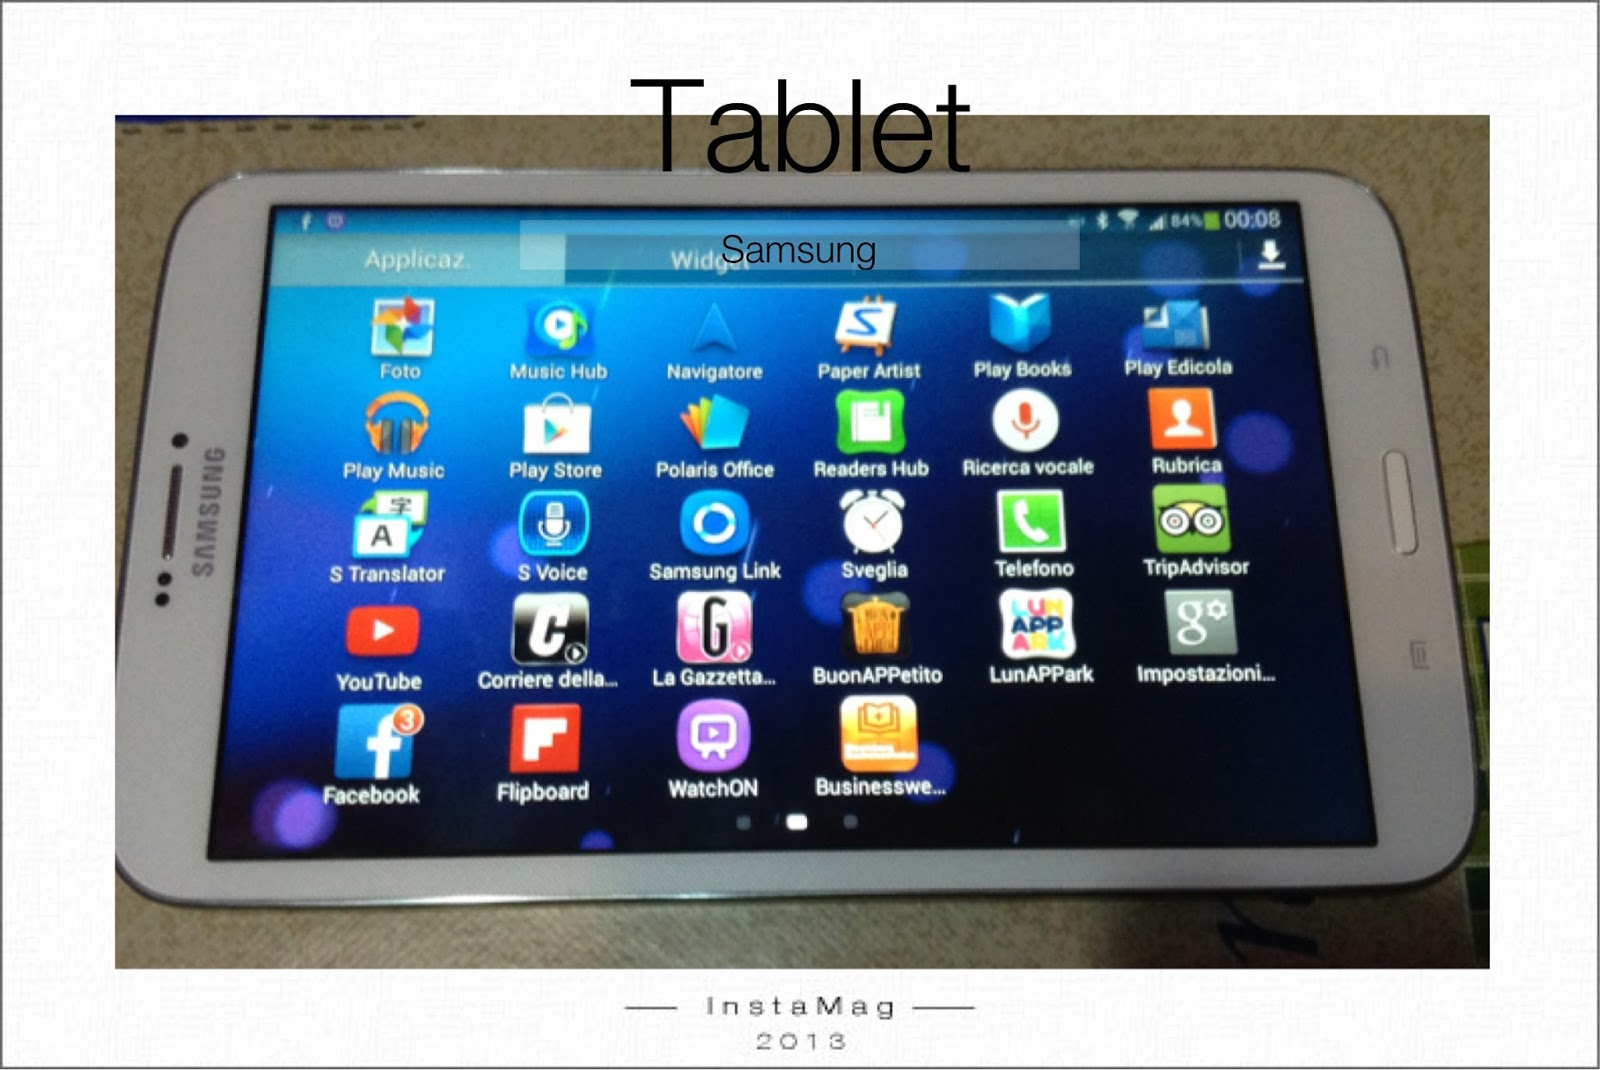 samsung galaxy tab 3 8.0  redcoon.it